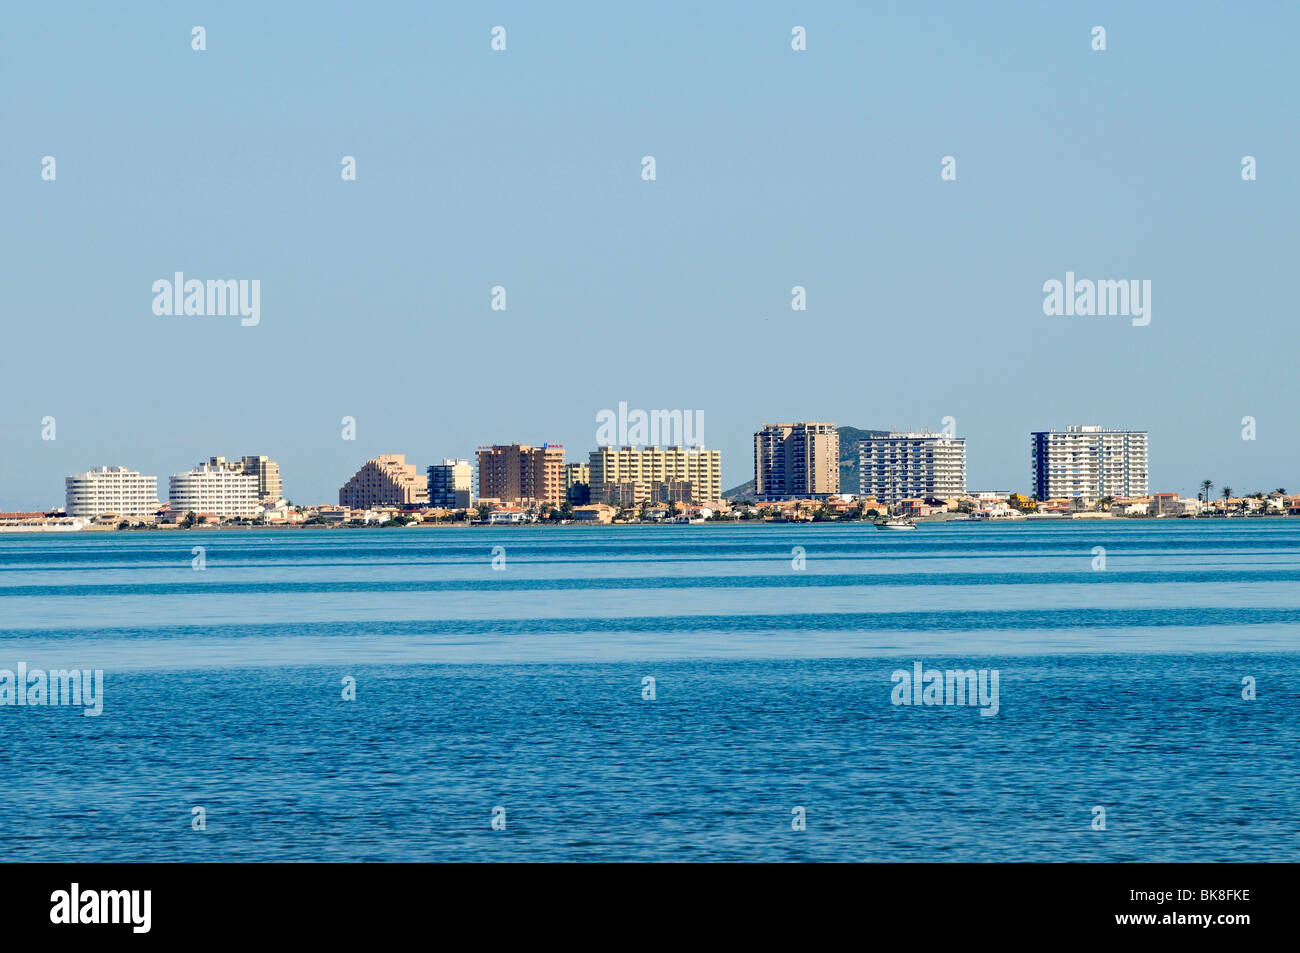 High-rise buildings, lagoon, inland sea, La Manga, Mar Menor, Murcia, Spain, Europe - Stock Image